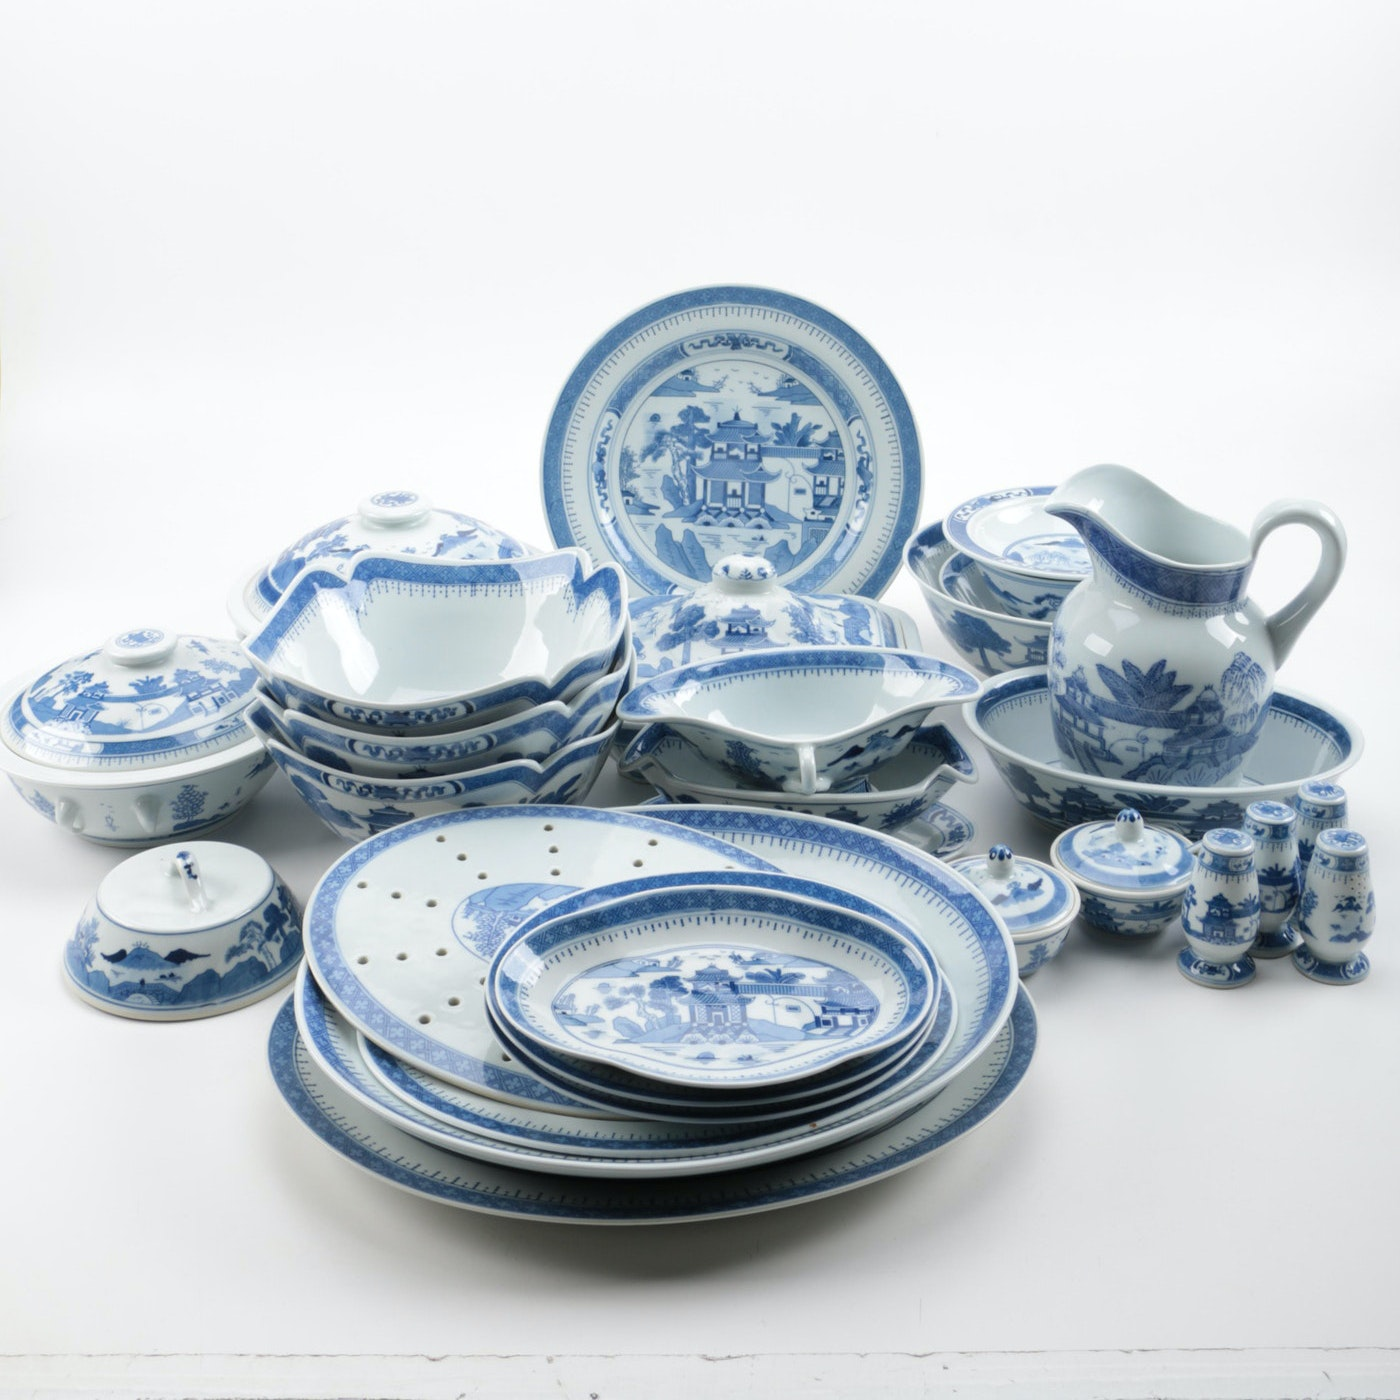 Collection of Blue and White Chinese Serveware